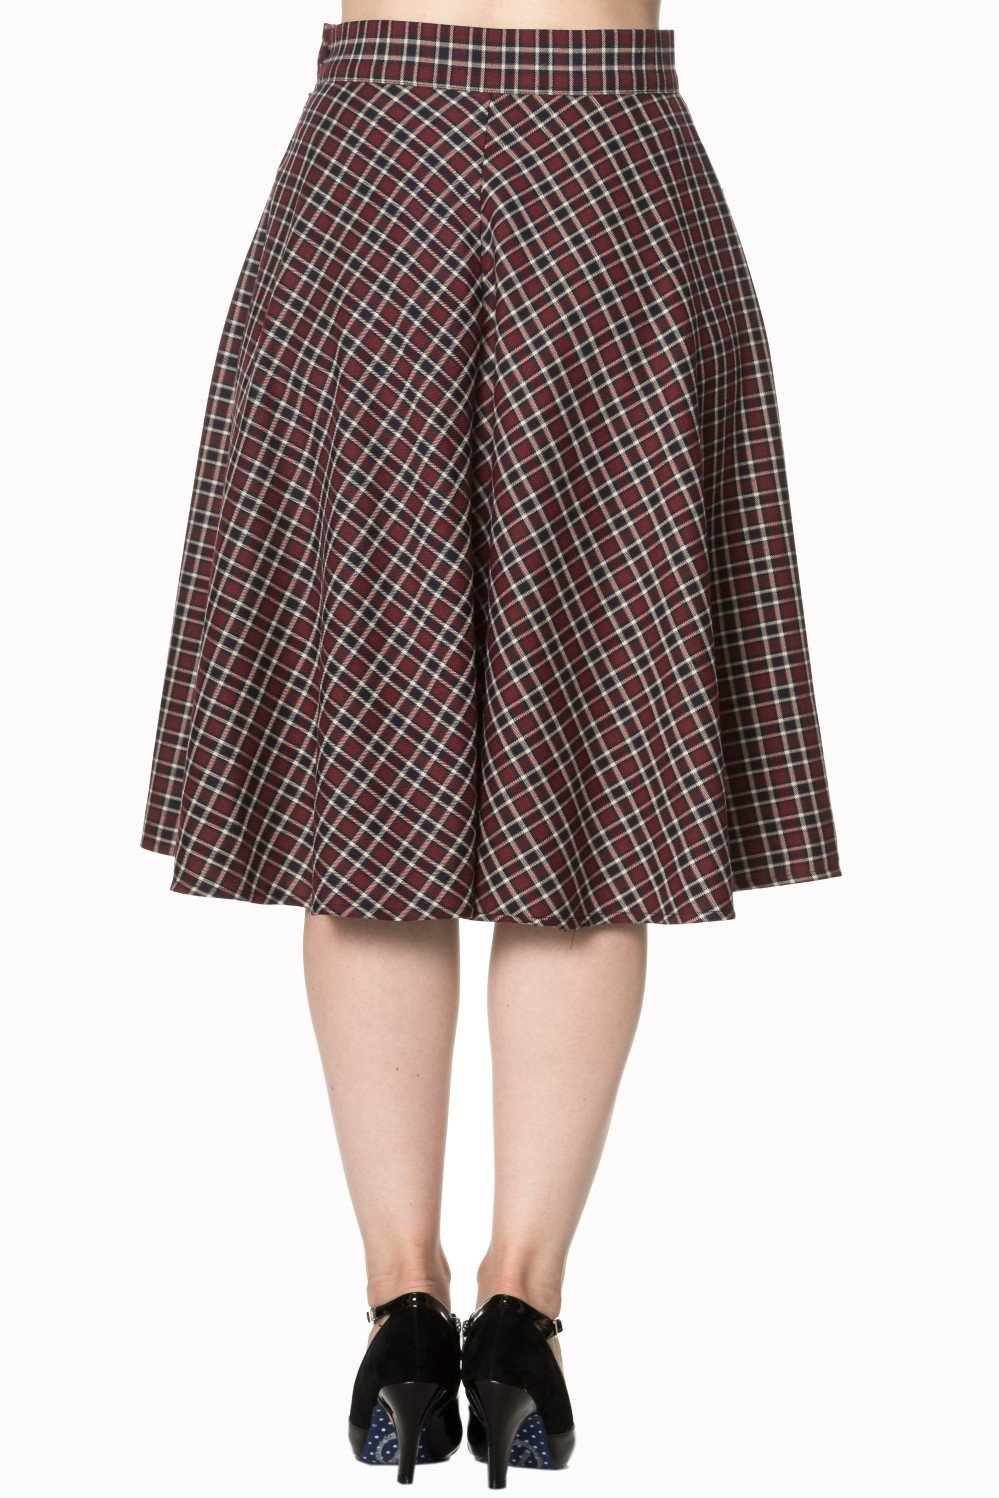 Dancing Days Apple of My Eye Tartan Check Skirt Red/Black (Plus Size) - Bohemian Finds